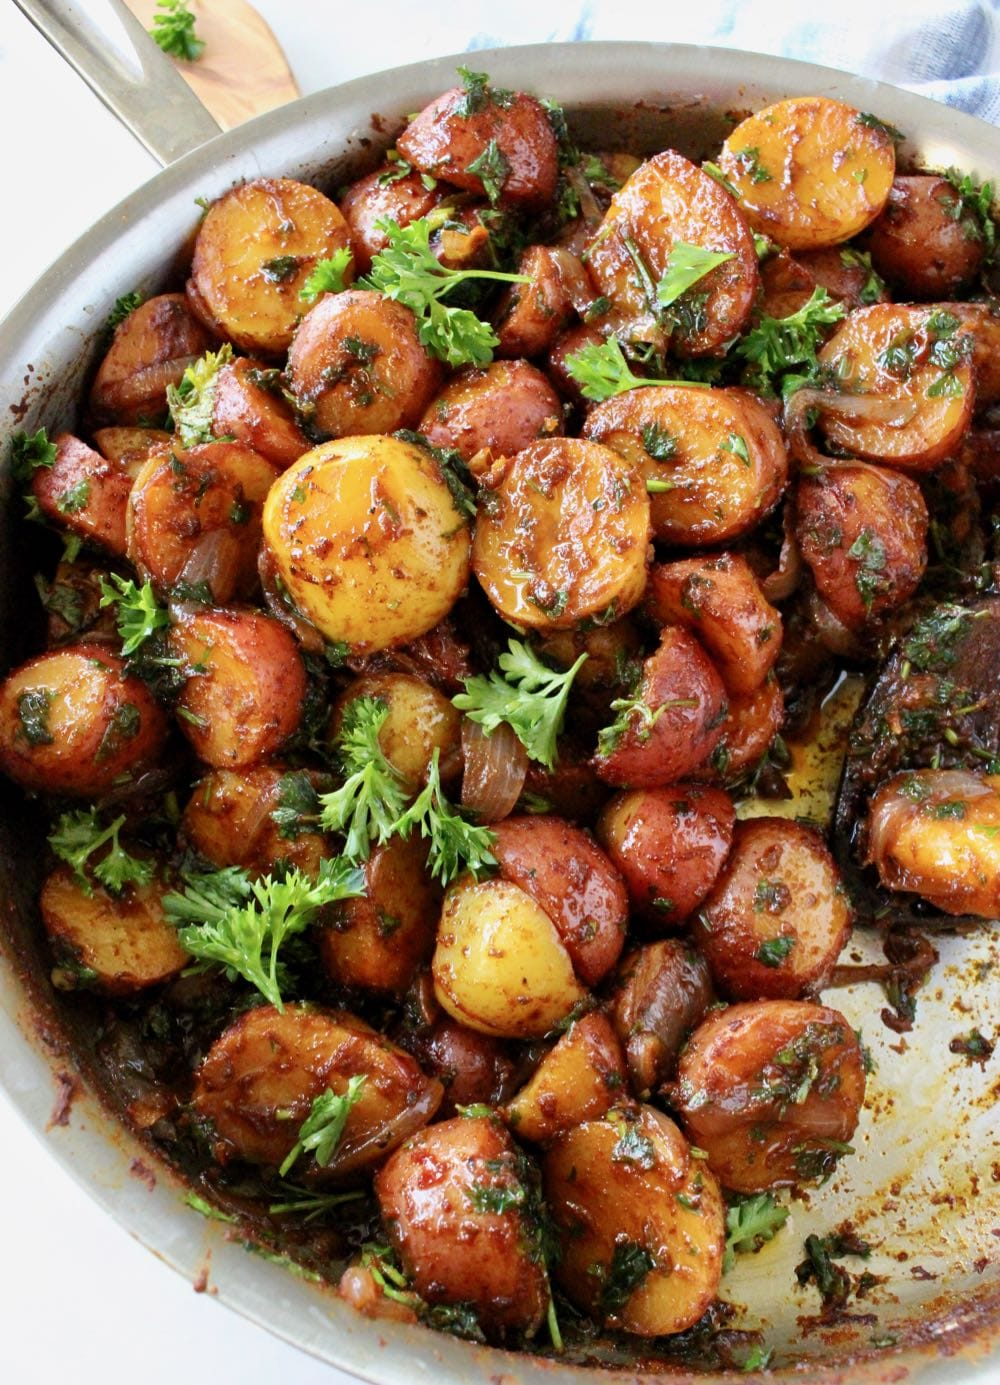 Grandma's Rustic Potatoes with Paprika, Olive Oil and Herbs. (Romanian Recipe)